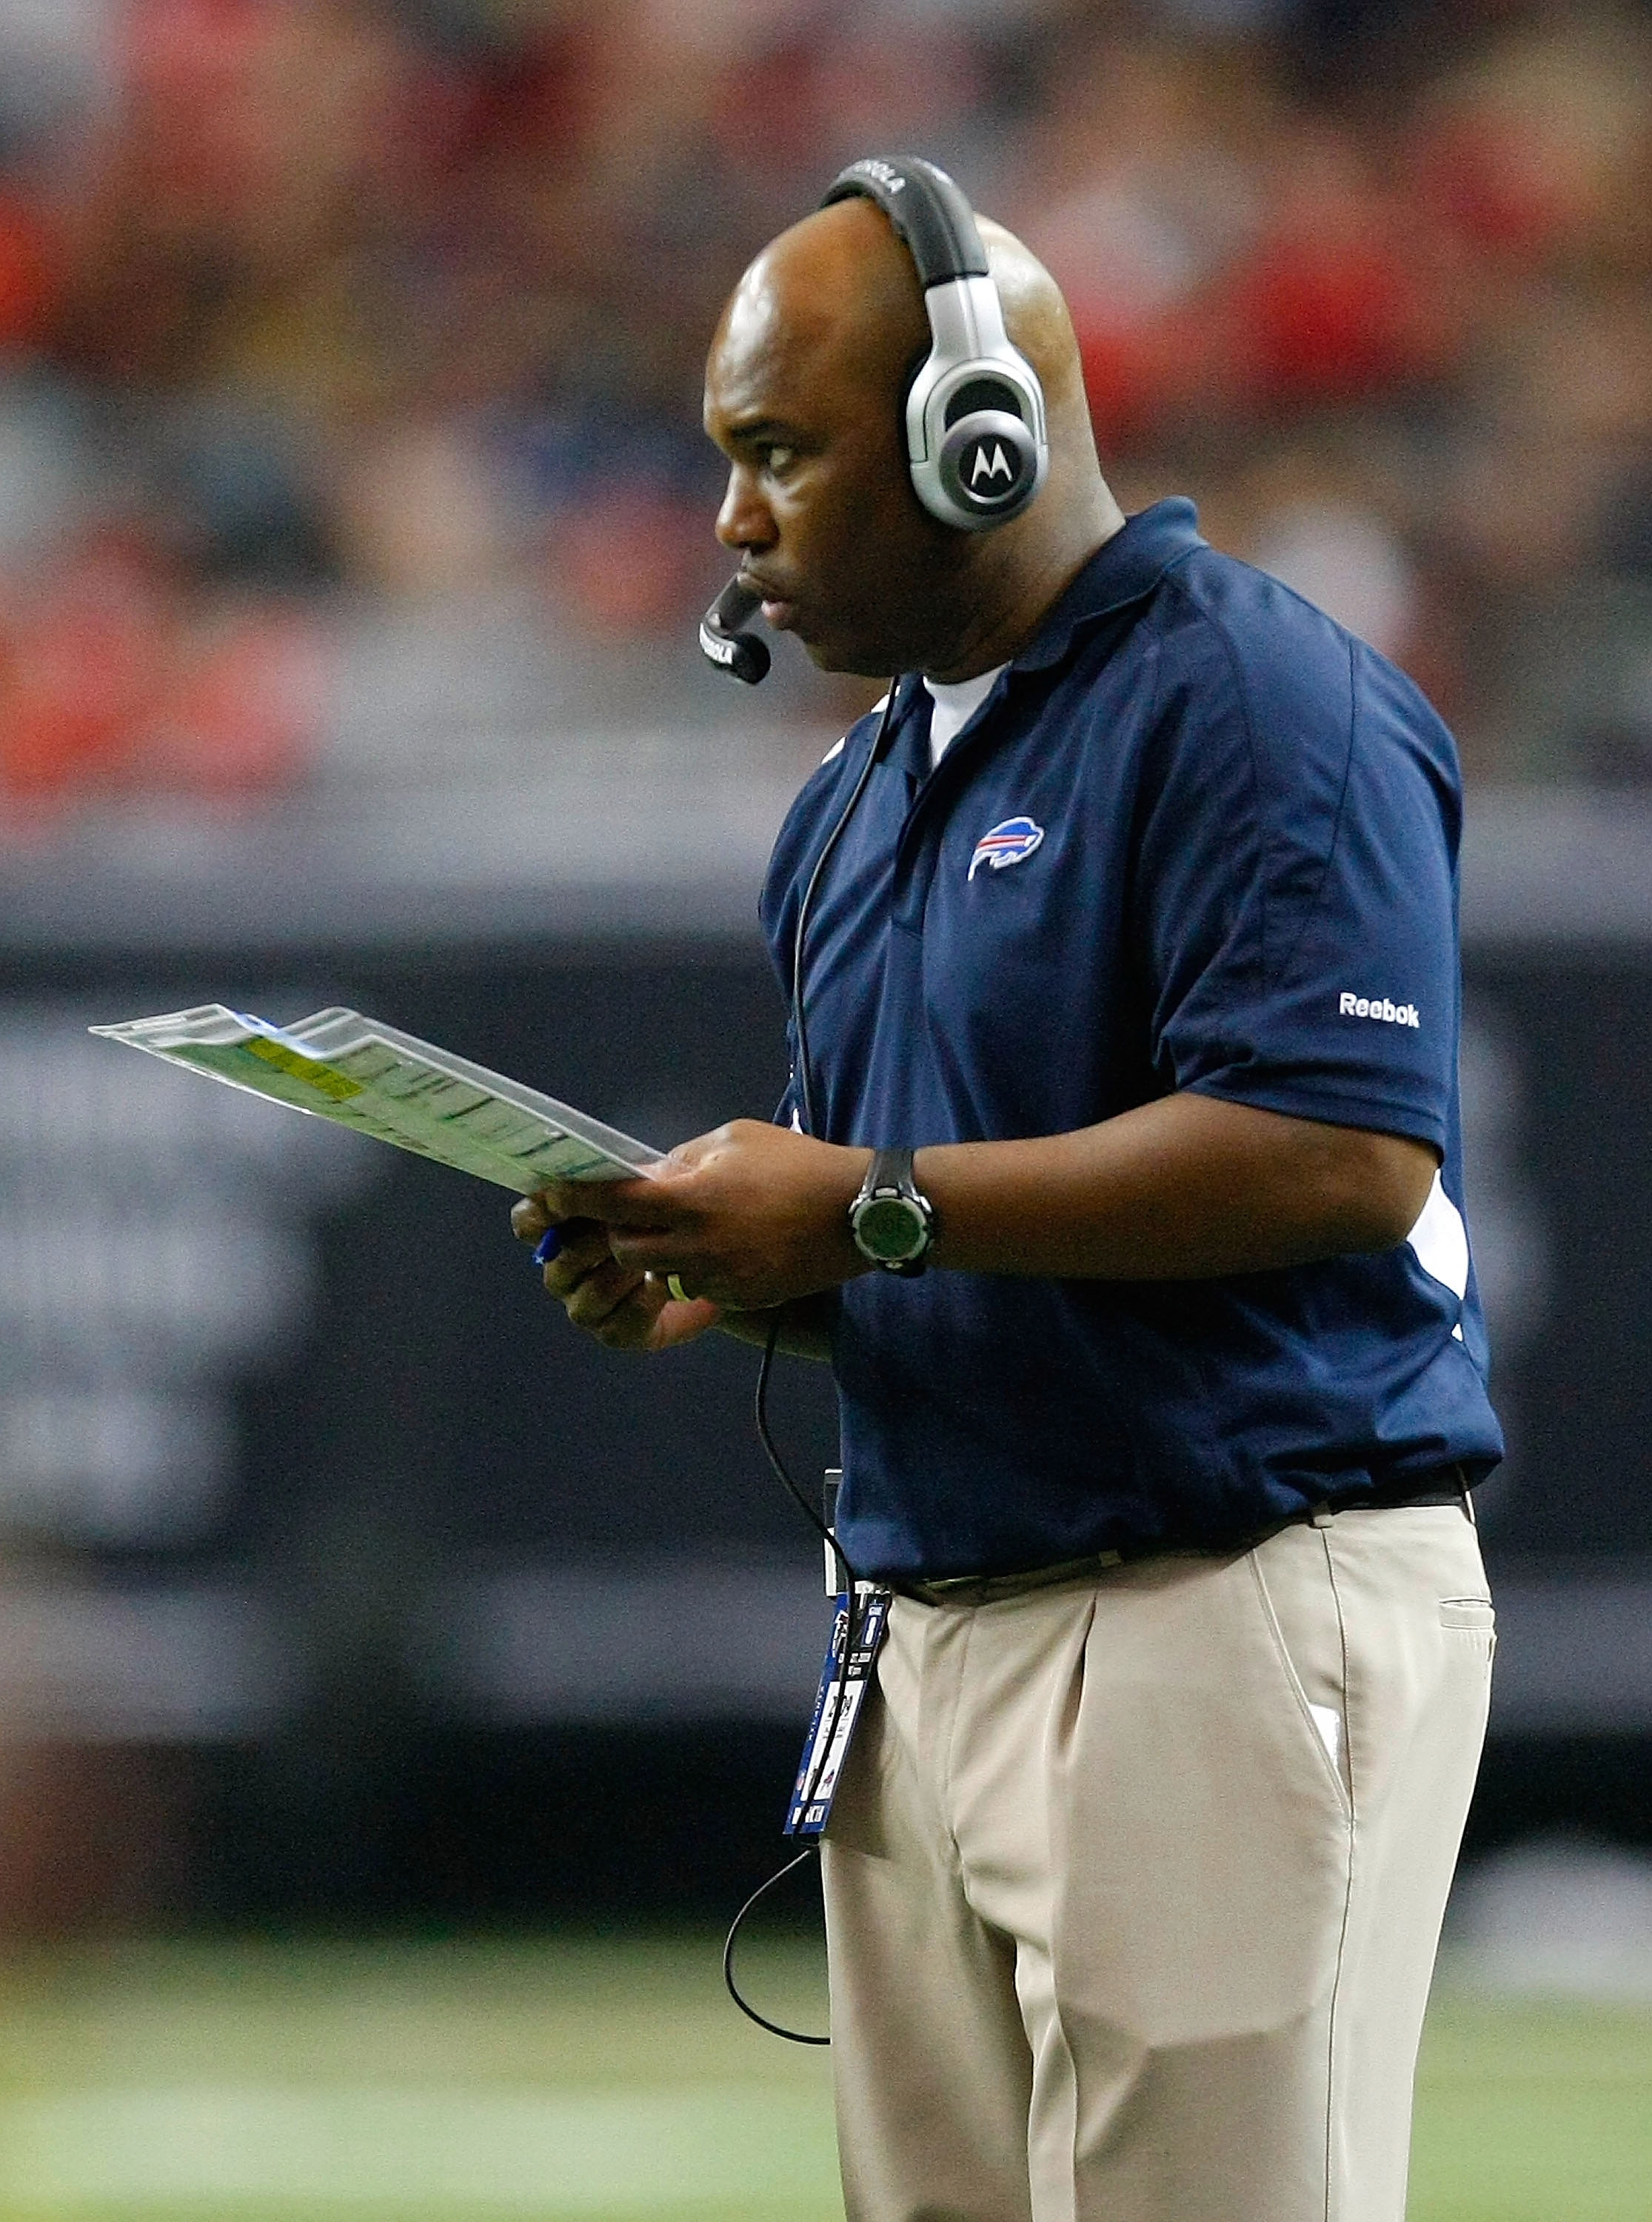 ATLANTA - DECEMBER 27:  Head coach Perry Fewell of the Buffalo Bills looks on from the sidelines against the Atlanta Falcons at Georgia Dome on December 27, 2009 in Atlanta, Georgia.  (Photo by Kevin C. Cox/Getty Images)